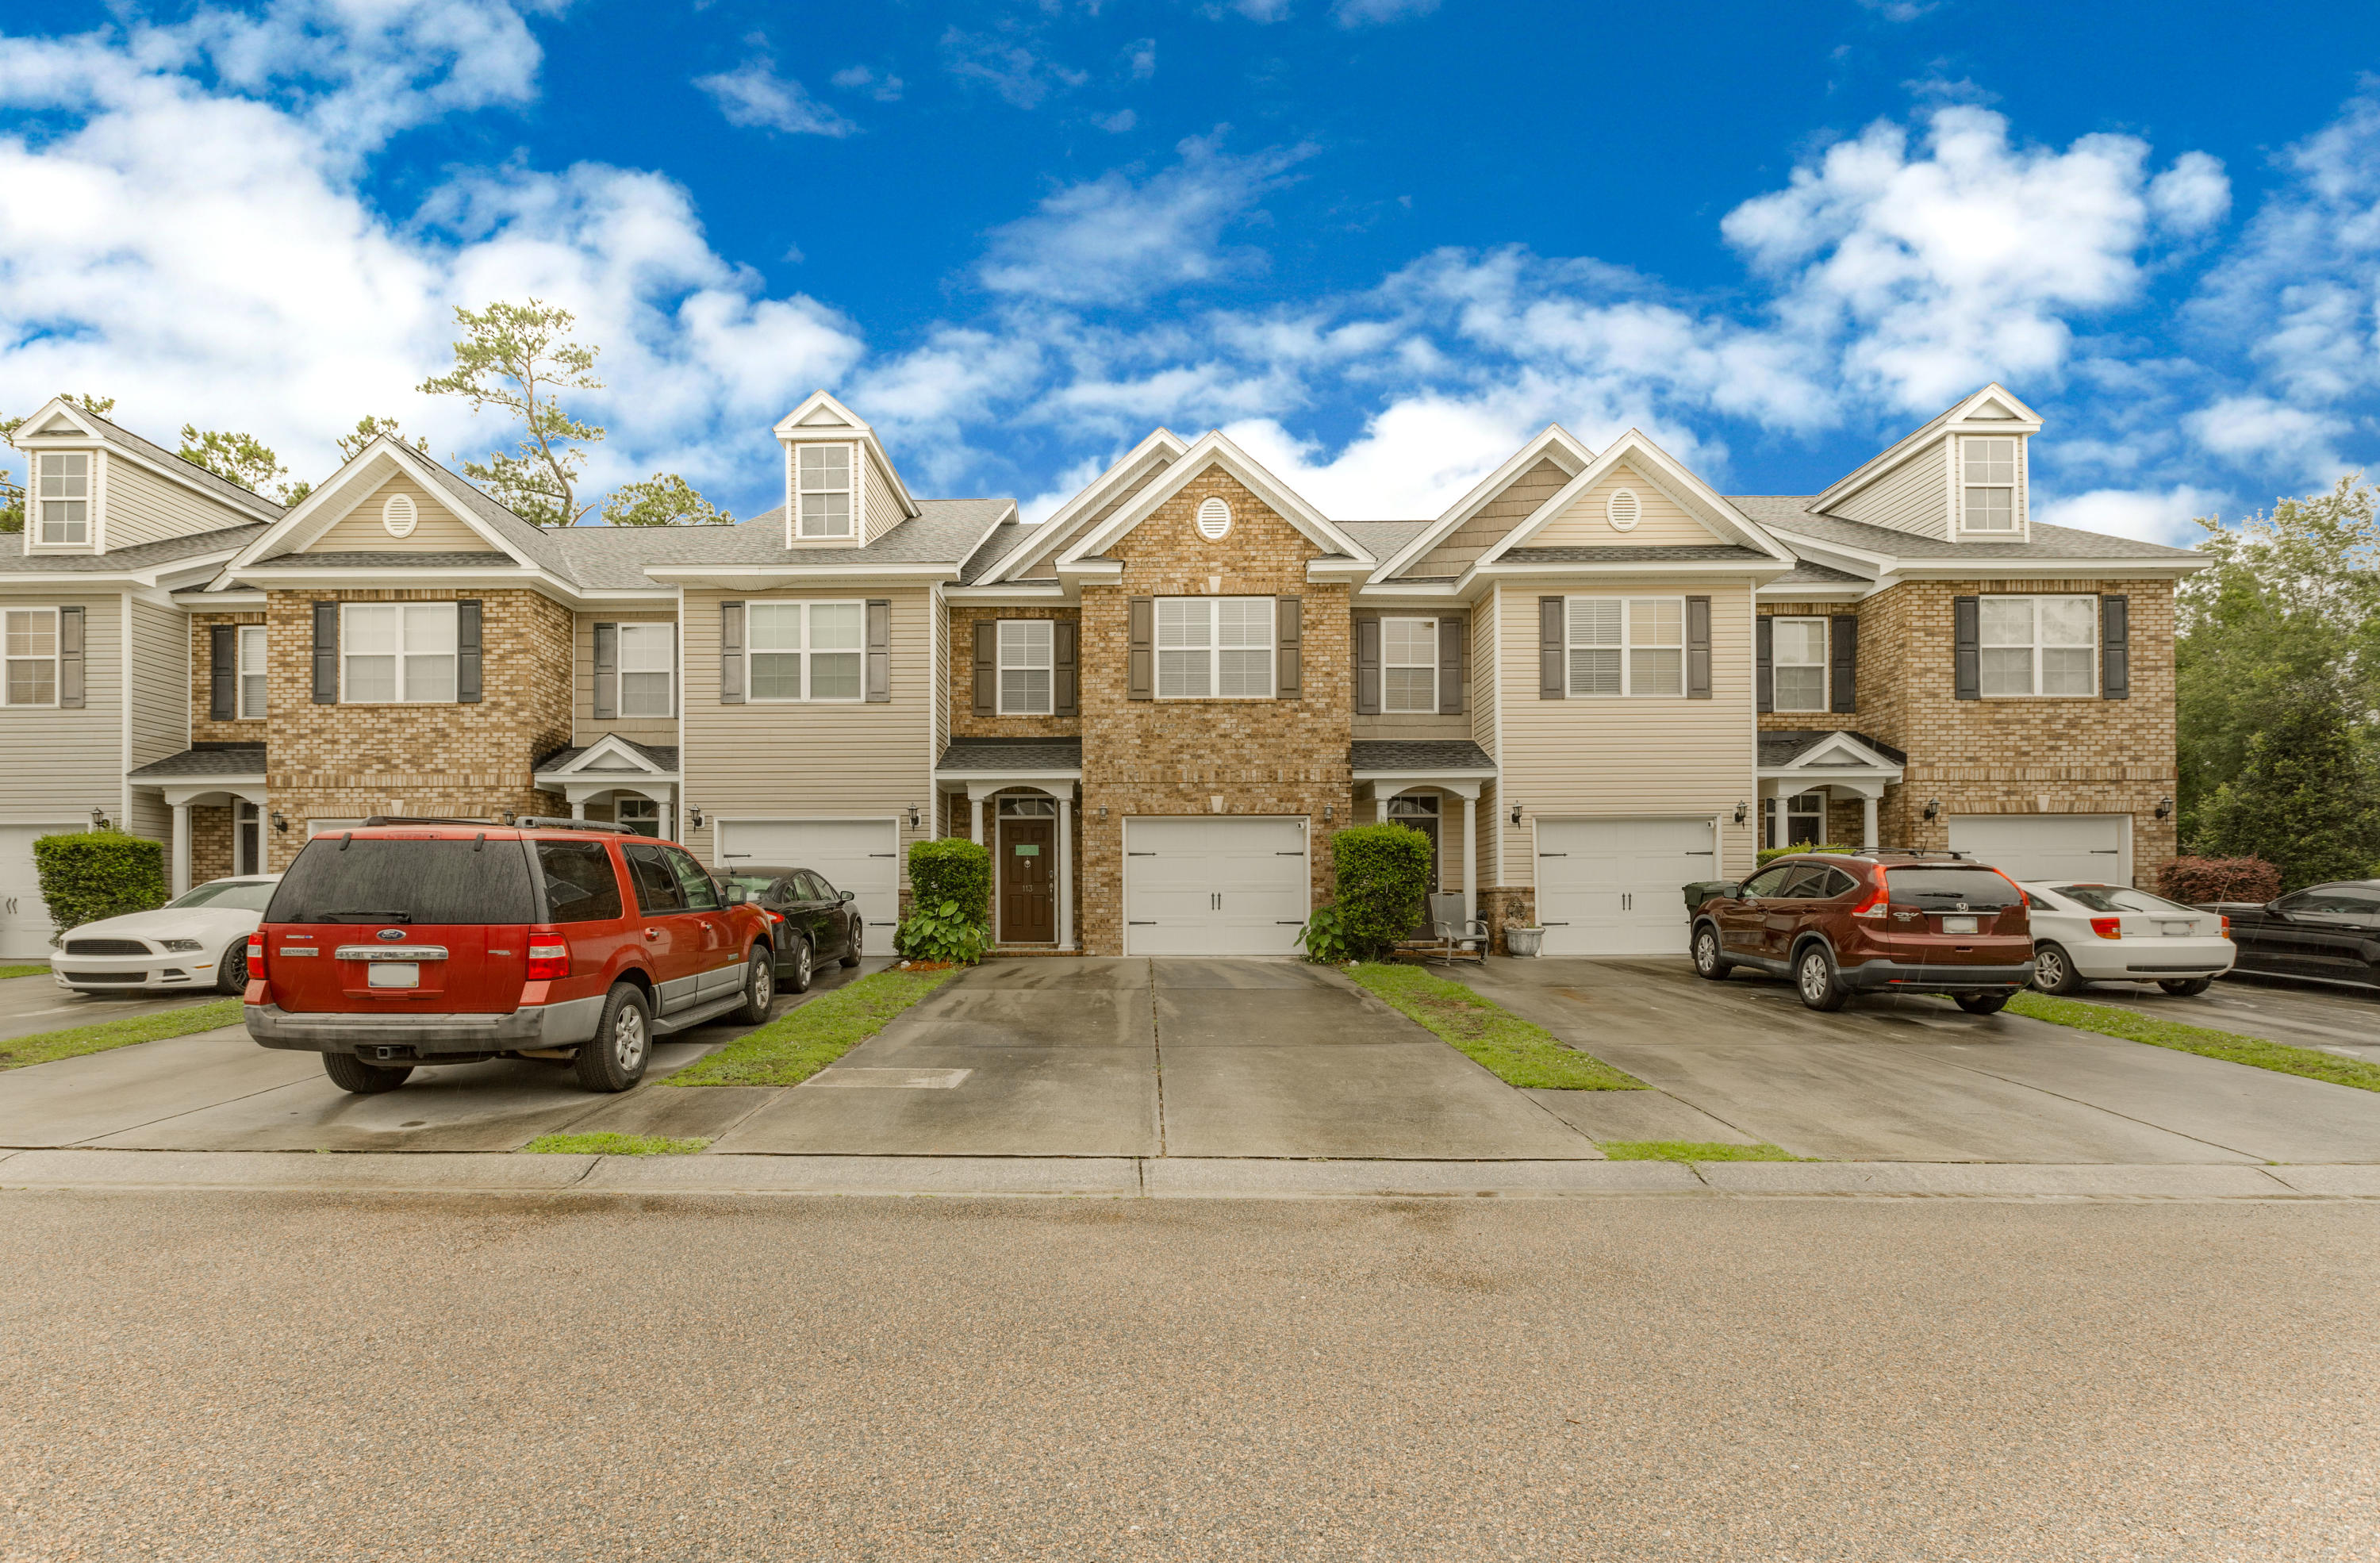 Berkeley Commons Townhomes Homes For Sale - 113 Lamplighter, Summerville, SC - 29